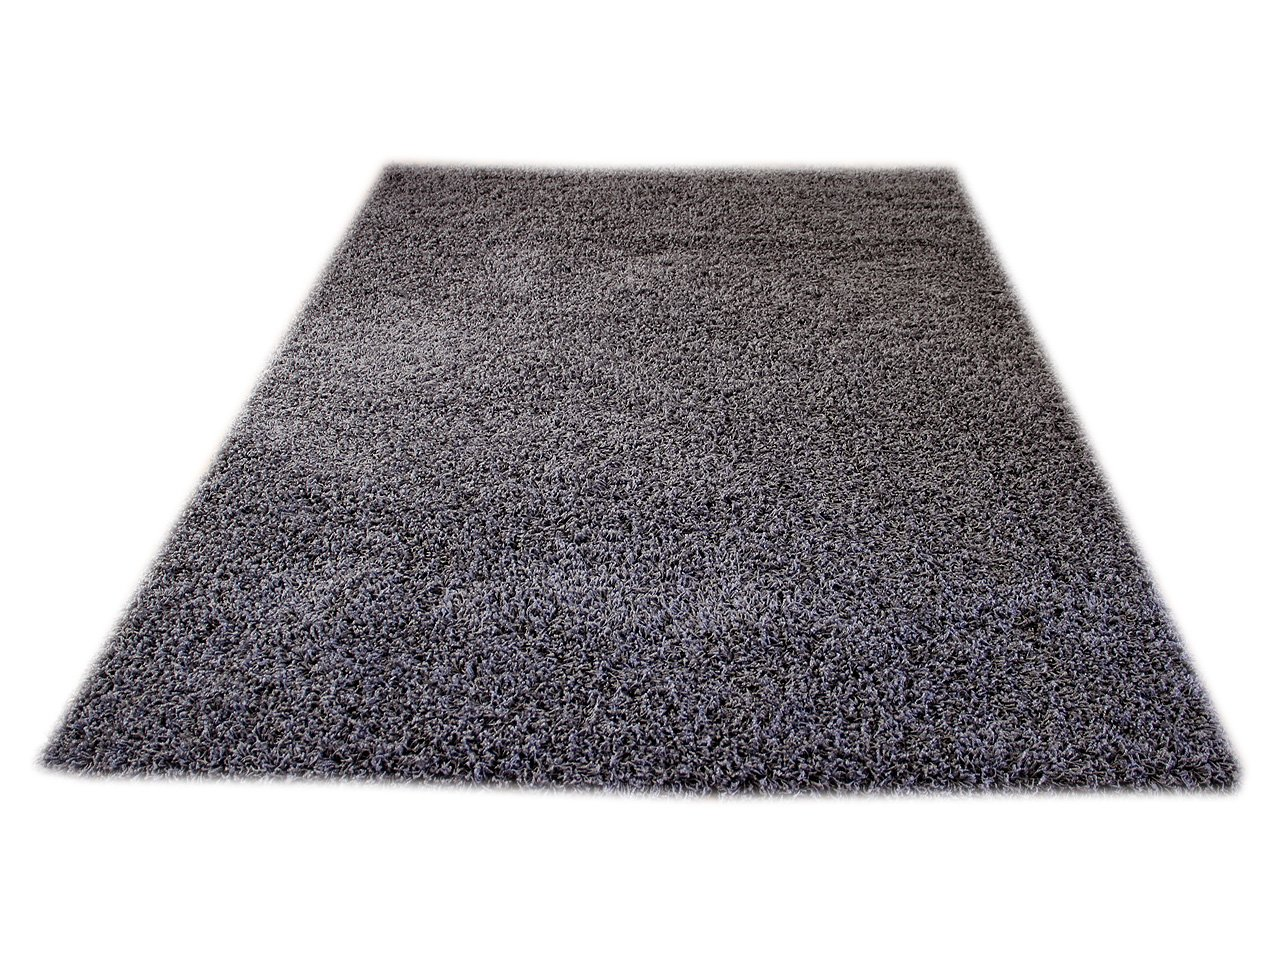 Aloha Hochflor Langflor Shaggy Teppich Anthrazit In Sofort